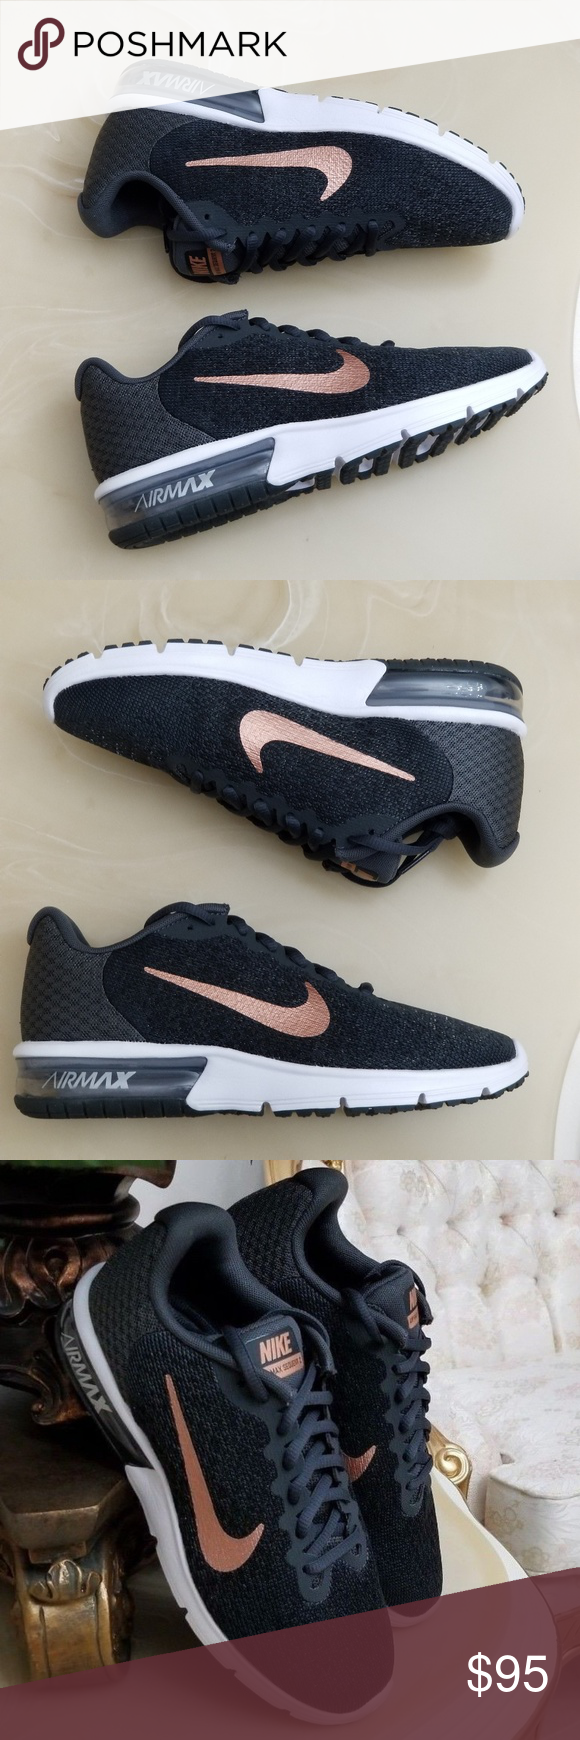 Women s Nike Air Max Sequent 2 Running Shoes Women s Size 7 Style 852465-013  Anthracite  Metallic Red  Bronze Nike Shoes Athletic Shoes 0495b13fb49f